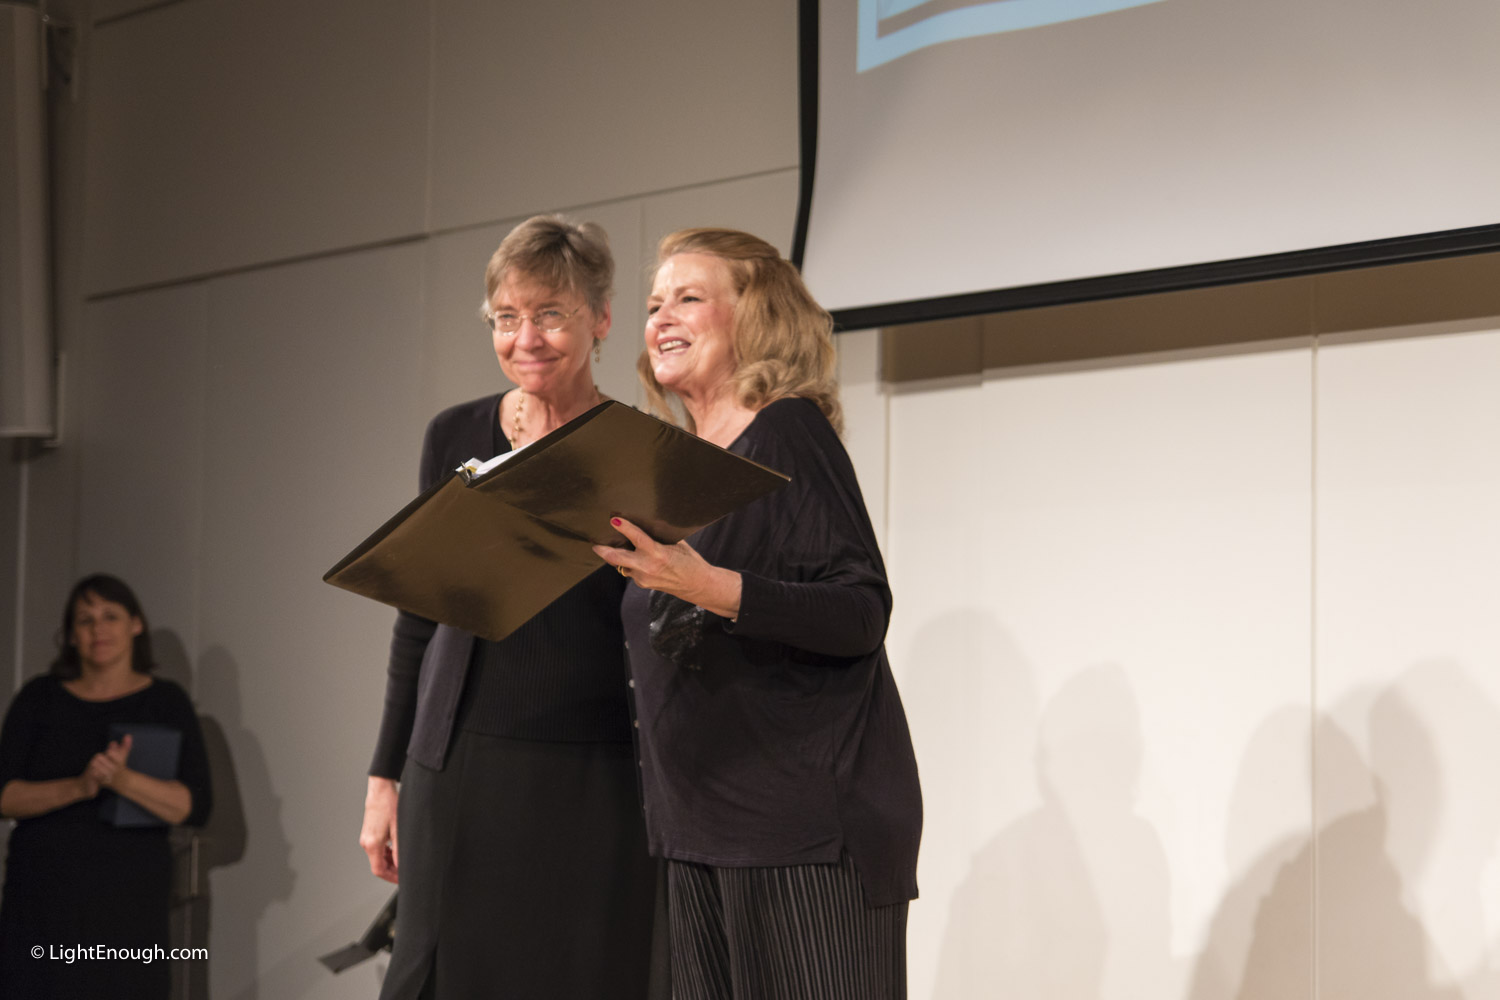 Diane Dorius, Chair Cabaret Planning Committee presents Award to long-serving Music Director Barbara Schelstrate at the UUCA Chalice Theatre Cabaret 20 year review (2016) Photo by John St Hilaire at www.lightenough.com